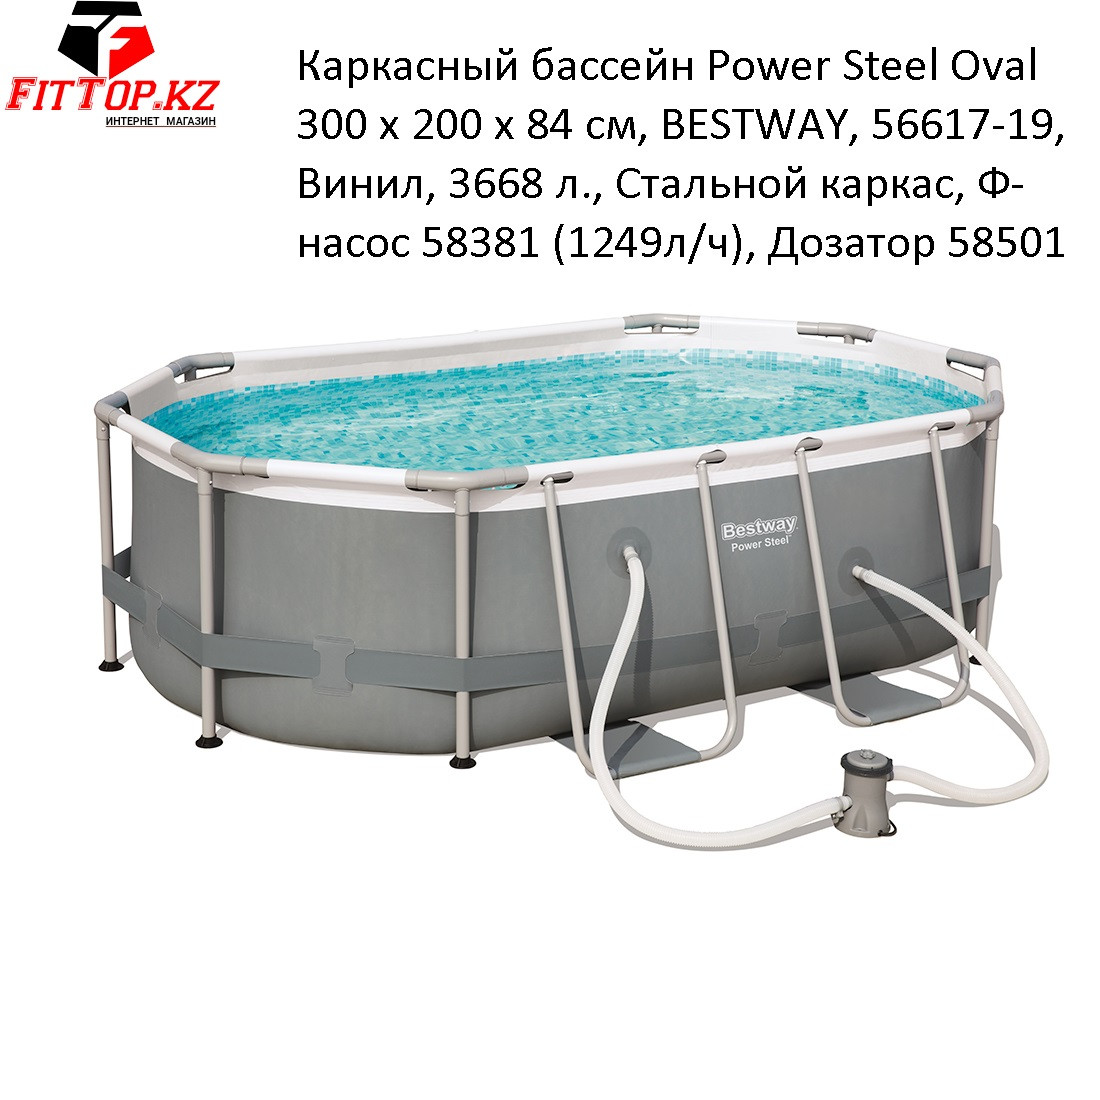 Каркасный бассейн Power Steel Oval 300 х 200 х 84 см, BESTWAY